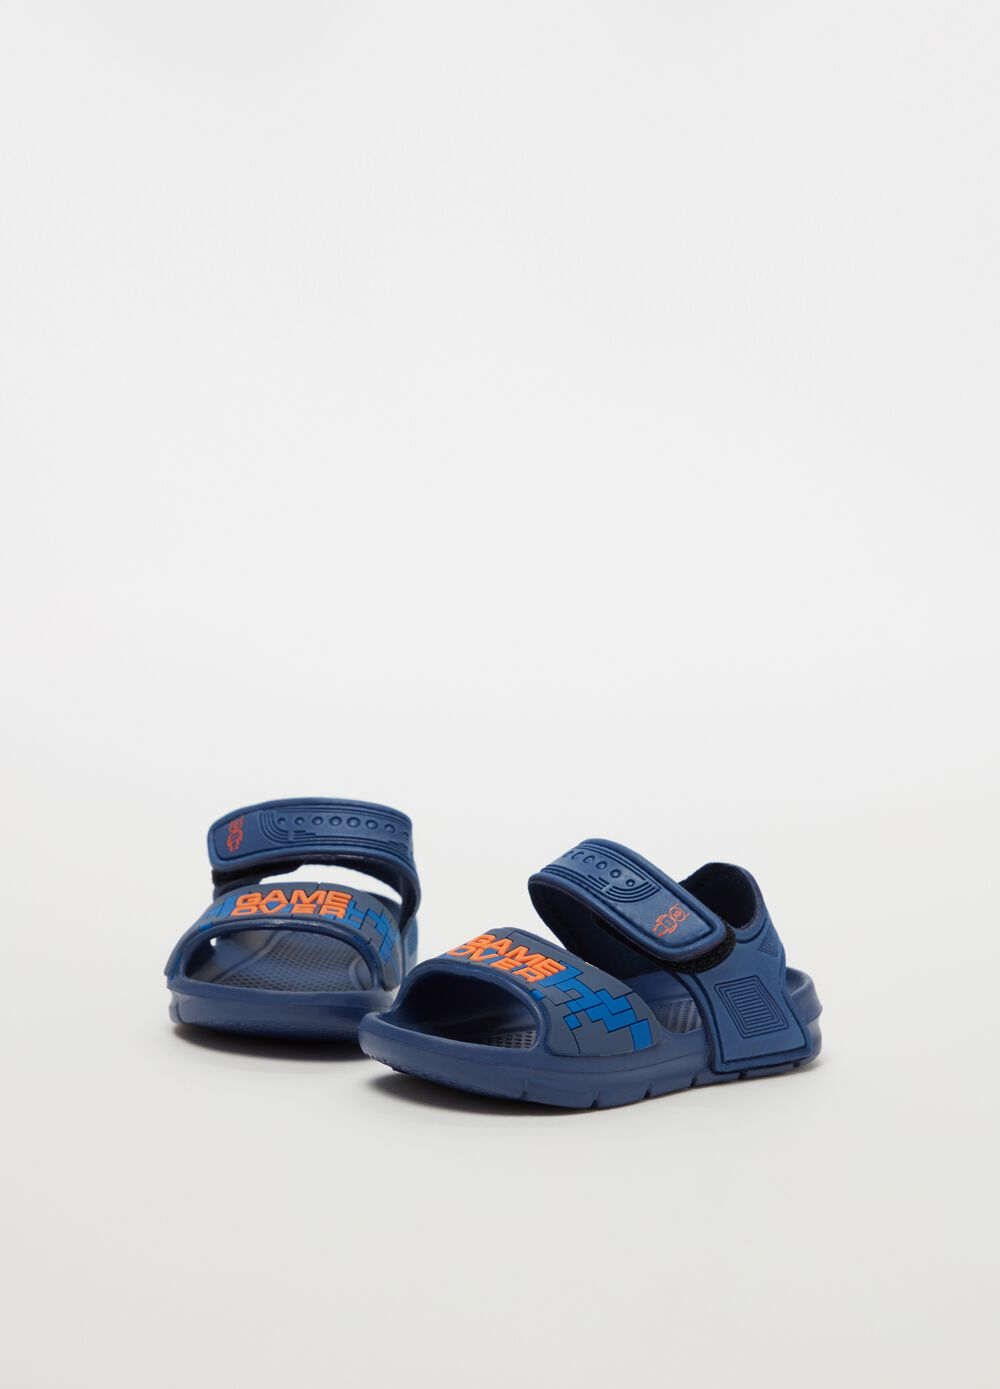 Slippers with Velcro fastening straps